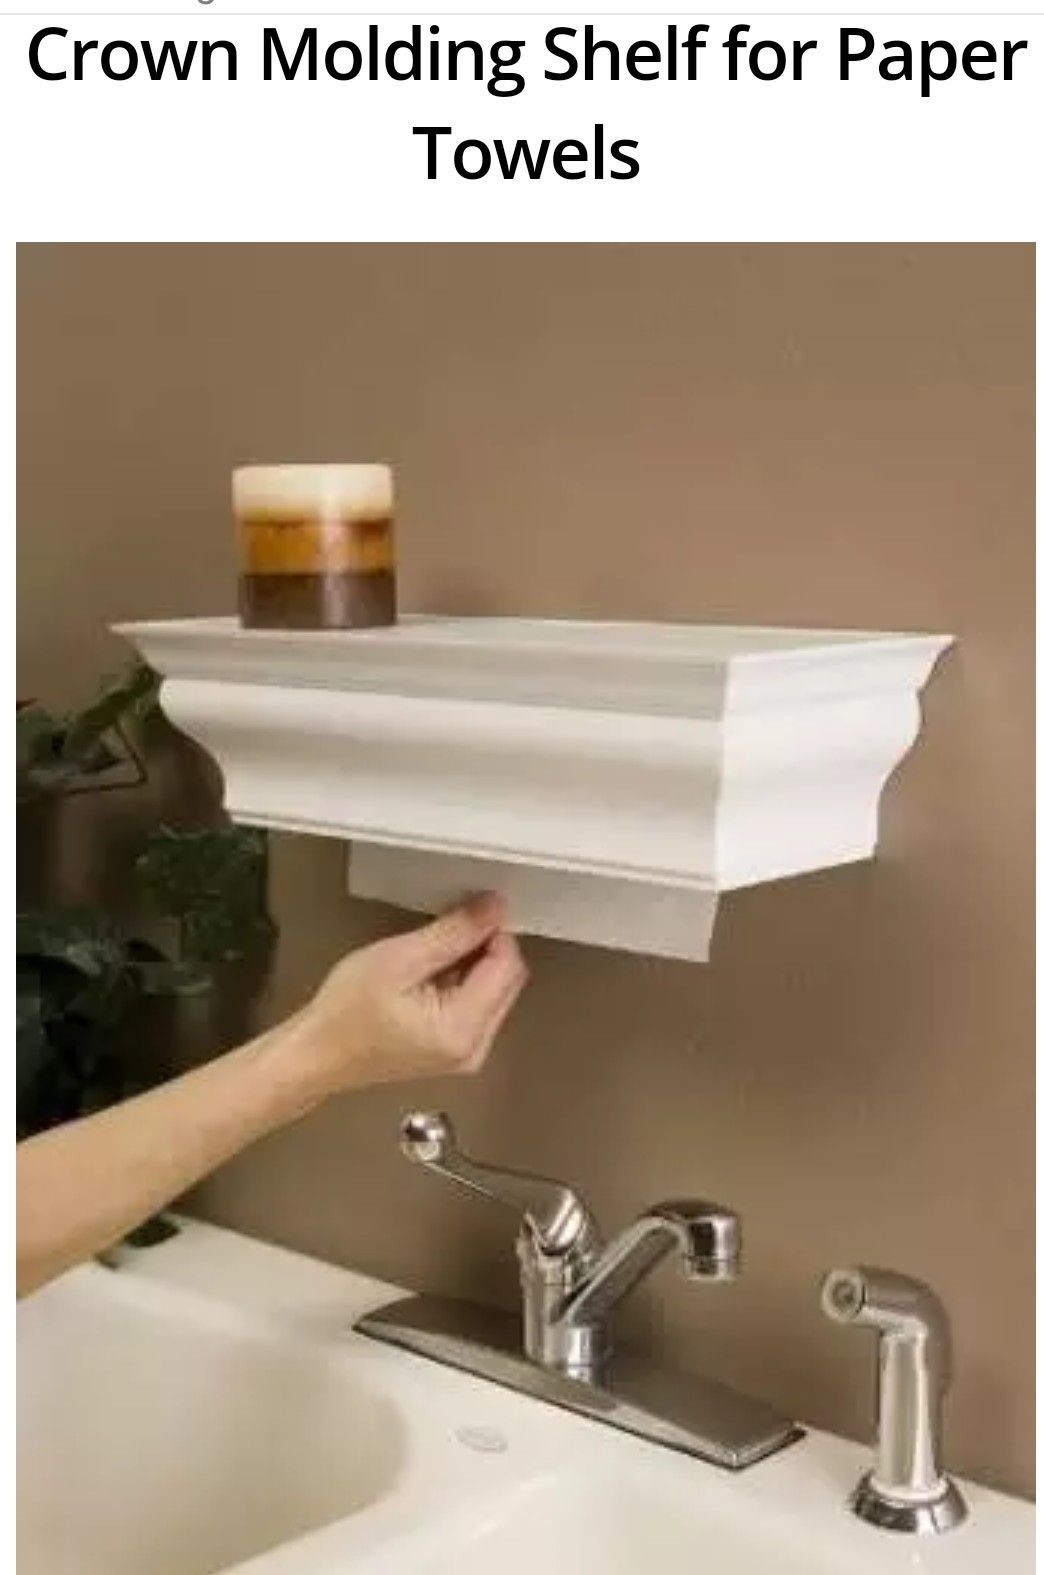 Decorative Bathroom Paper Towel Holder - Interior Design 3d • on decorative bathroom wall art, decorative bathroom trays, decorative kitchen paper towel holders, blacksmith made paper towel holders, decorative bathroom wastebaskets, metal hand towel holders, decorative bathroom furniture, decorative bath towel sets, decorative bathroom chairs, decorative bathroom baskets, decorative wall towel holders, decorative countertop towel holders, decorative bath towels gift, decorative hand towels, fancy towel holders, nautical towel holders, decorative metal paper towel holders, decorative towel racks, decorative bathroom mirrors, decorative towel bars,